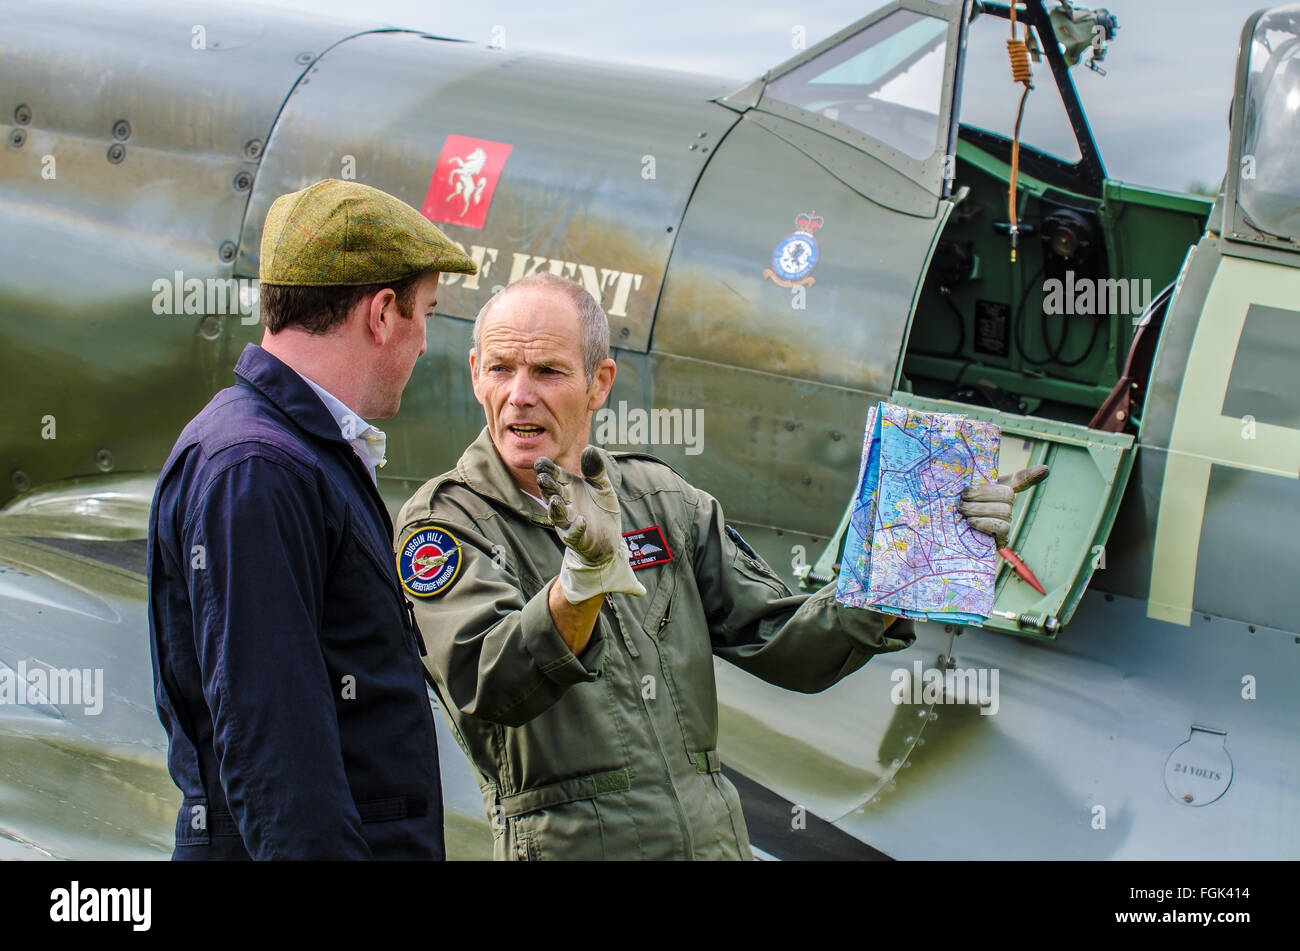 Pilots Richard Grace and Clive Denney plan their maneuvers for an air display at the Goodwood Revival 2015. Spitfire. - Stock Image